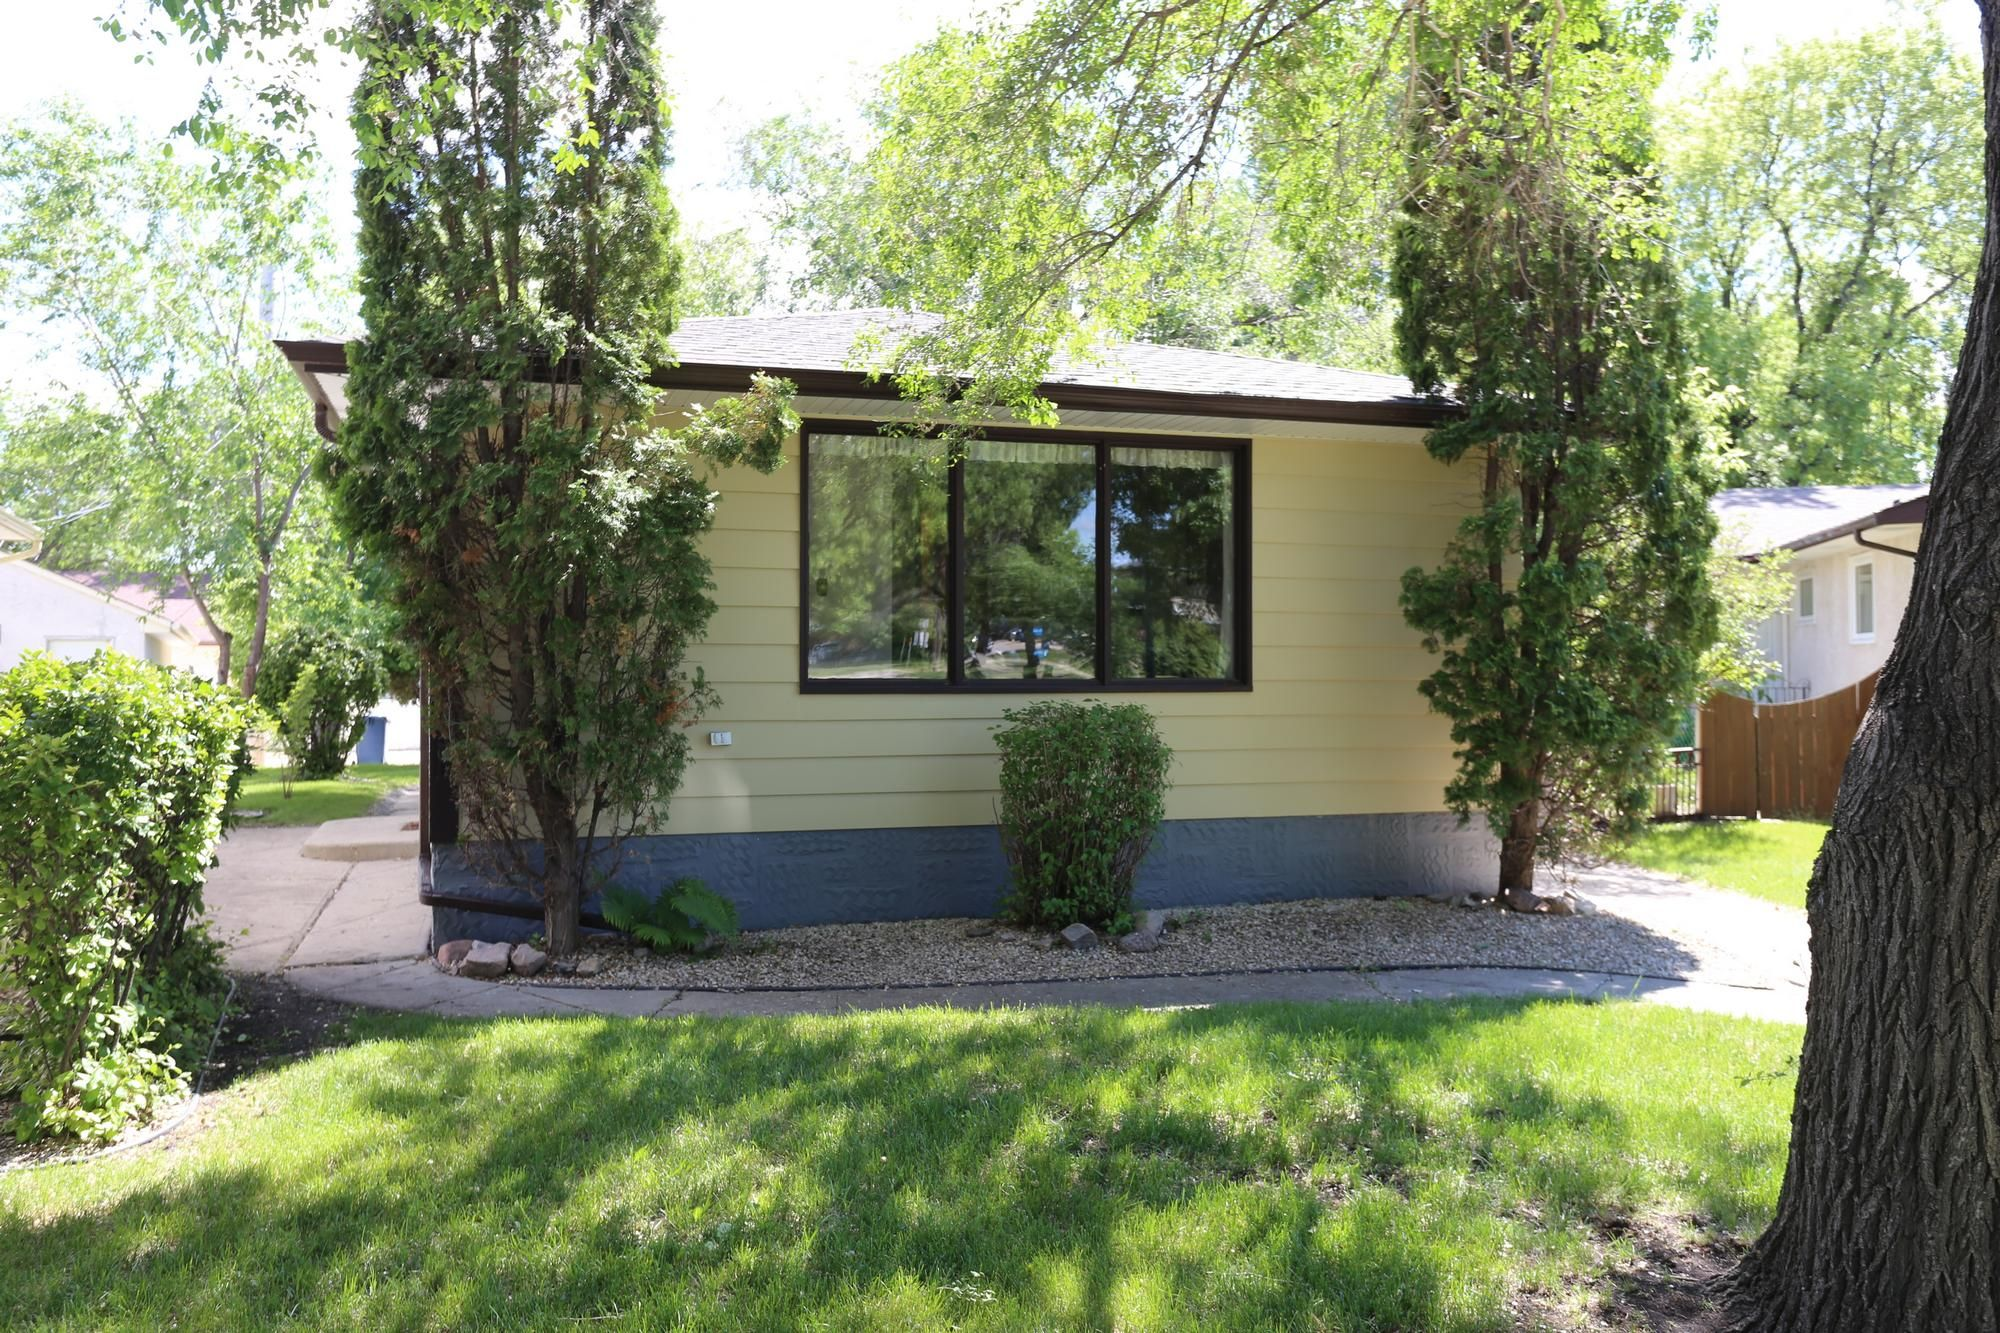 Photo 2: Photos: 1320 Valour Road in Winnipeg: West End Single Family Detached for sale (5C)  : MLS®# 1816744